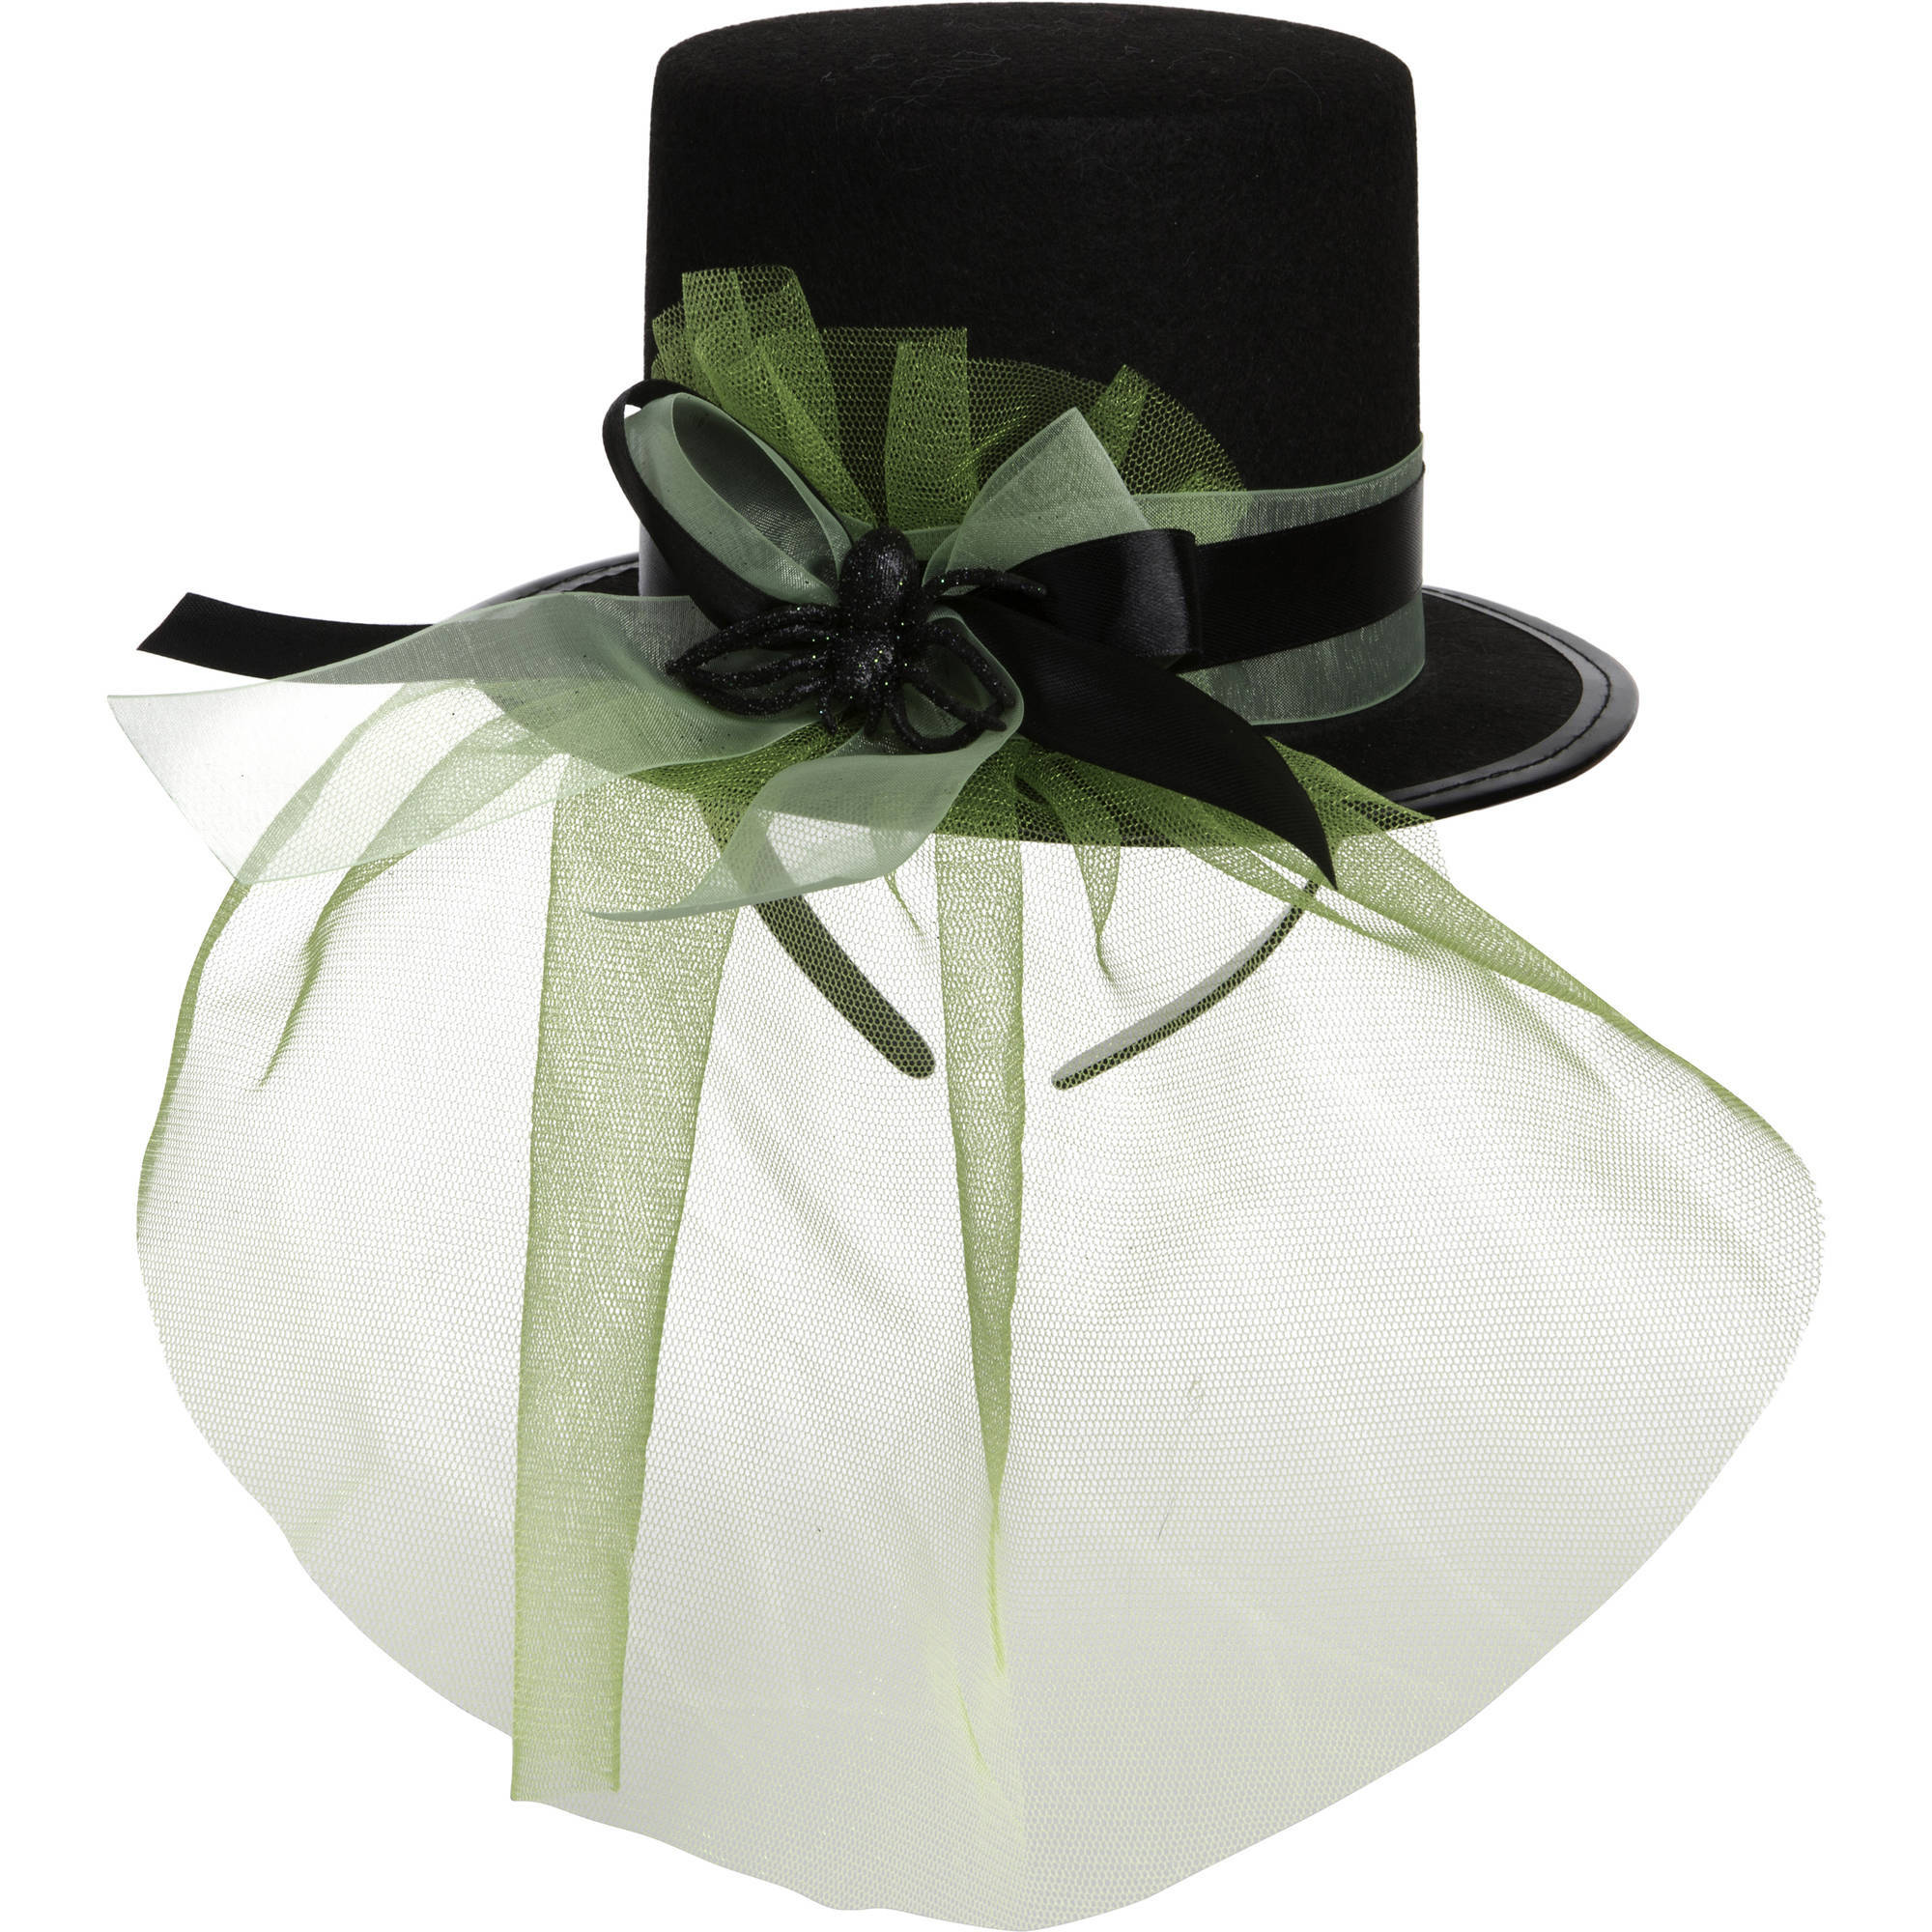 Spider Top Hat Halloween Costume Accessory